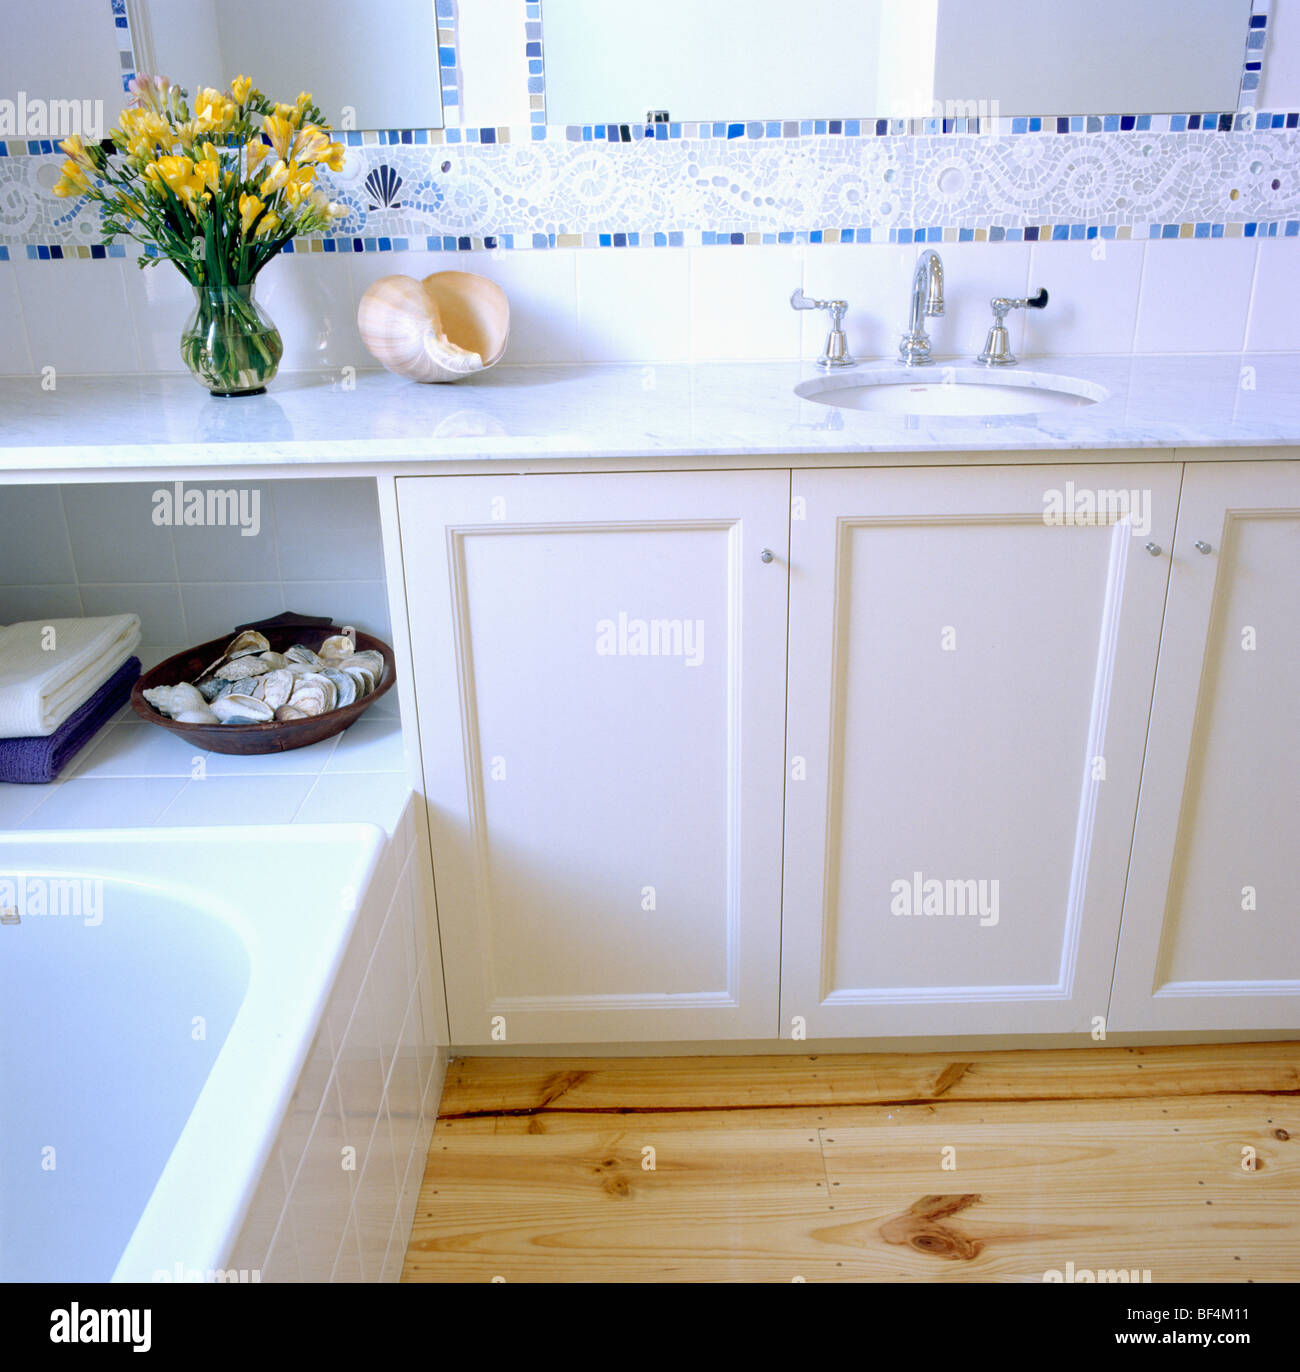 Mosaic tiled border above fitted vanity unit in modern white bathroom - Stock Image